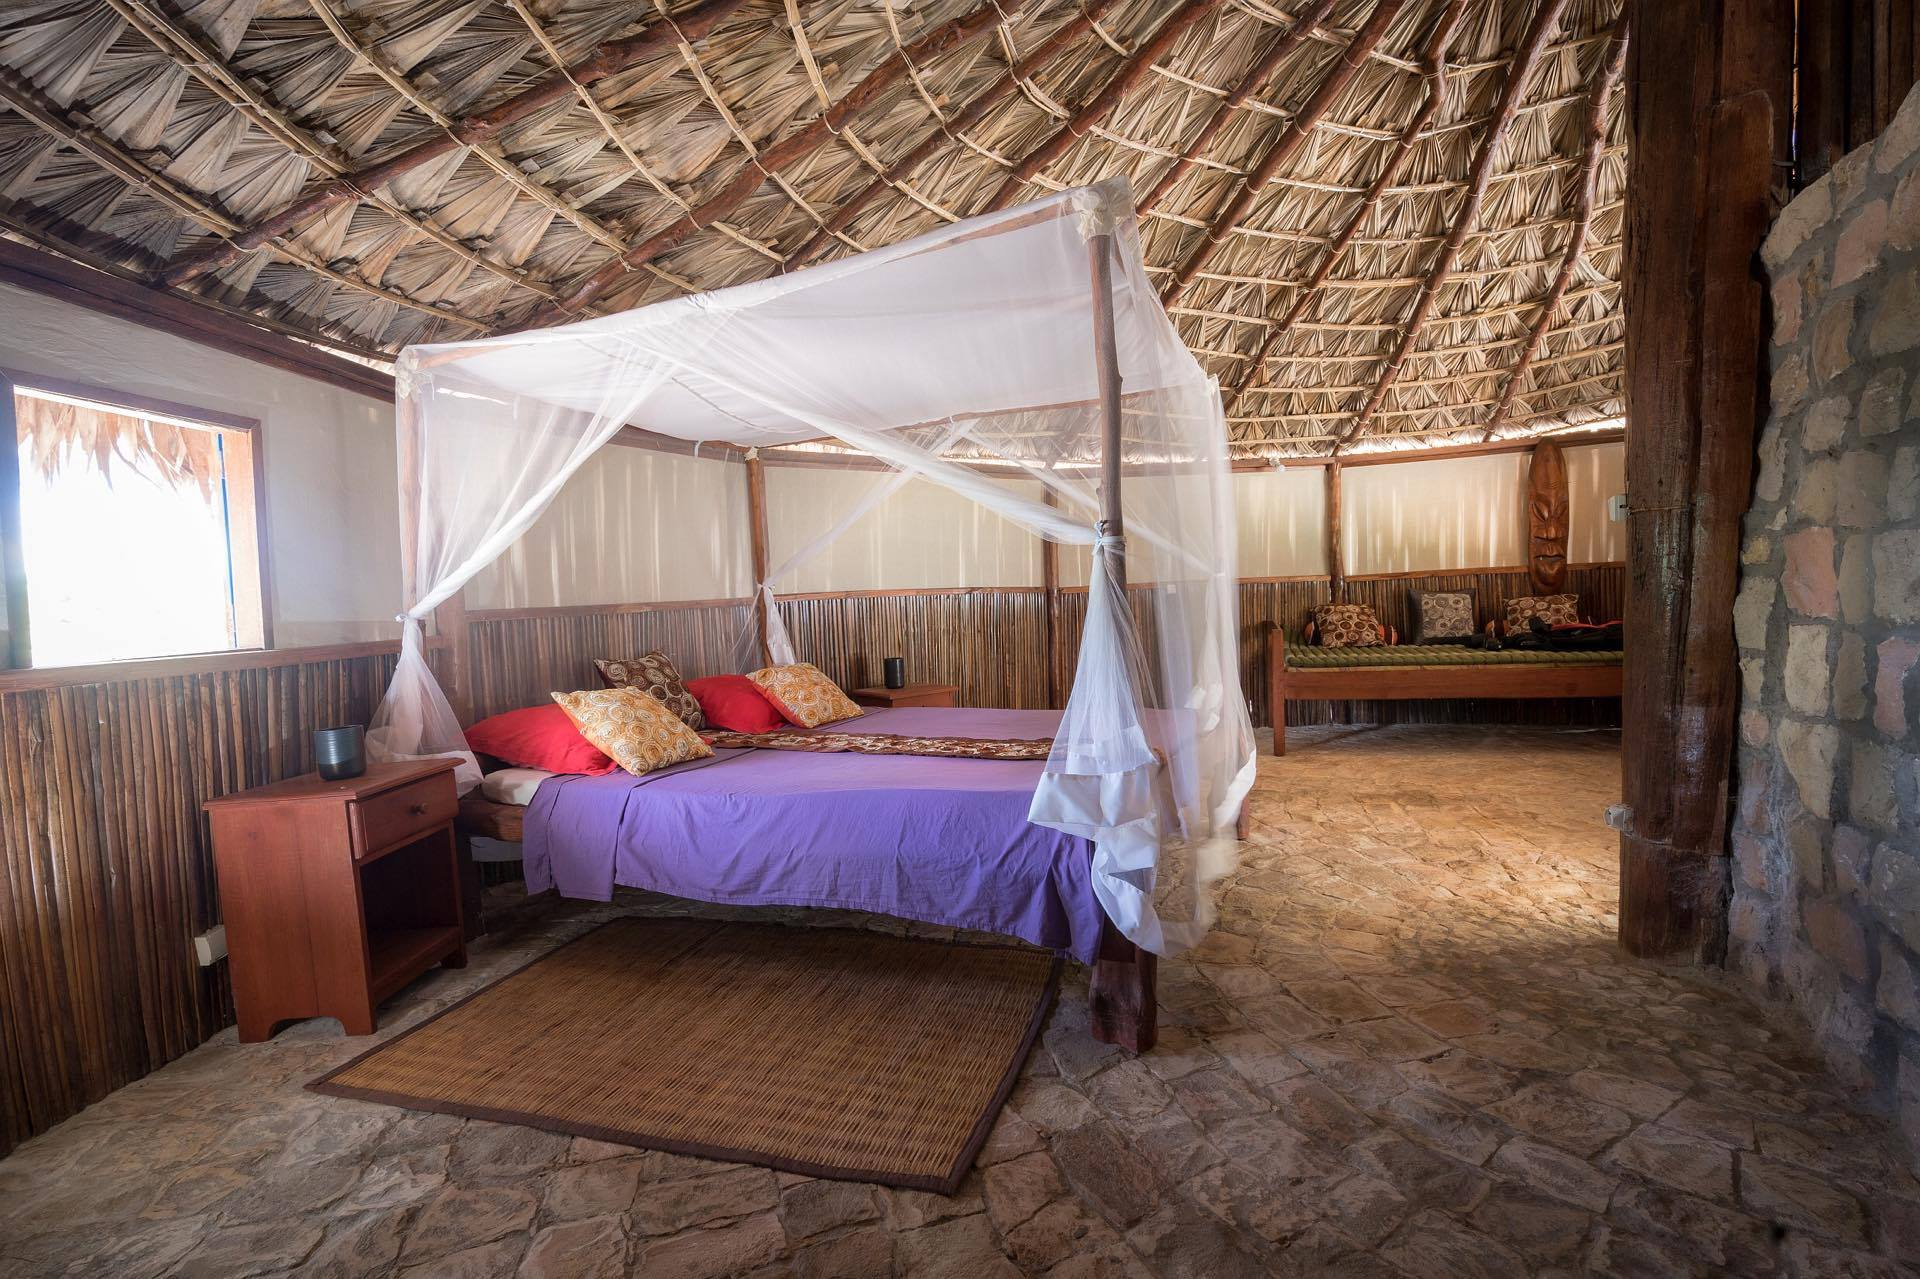 The 100% kite and windsurf ECOLODGE